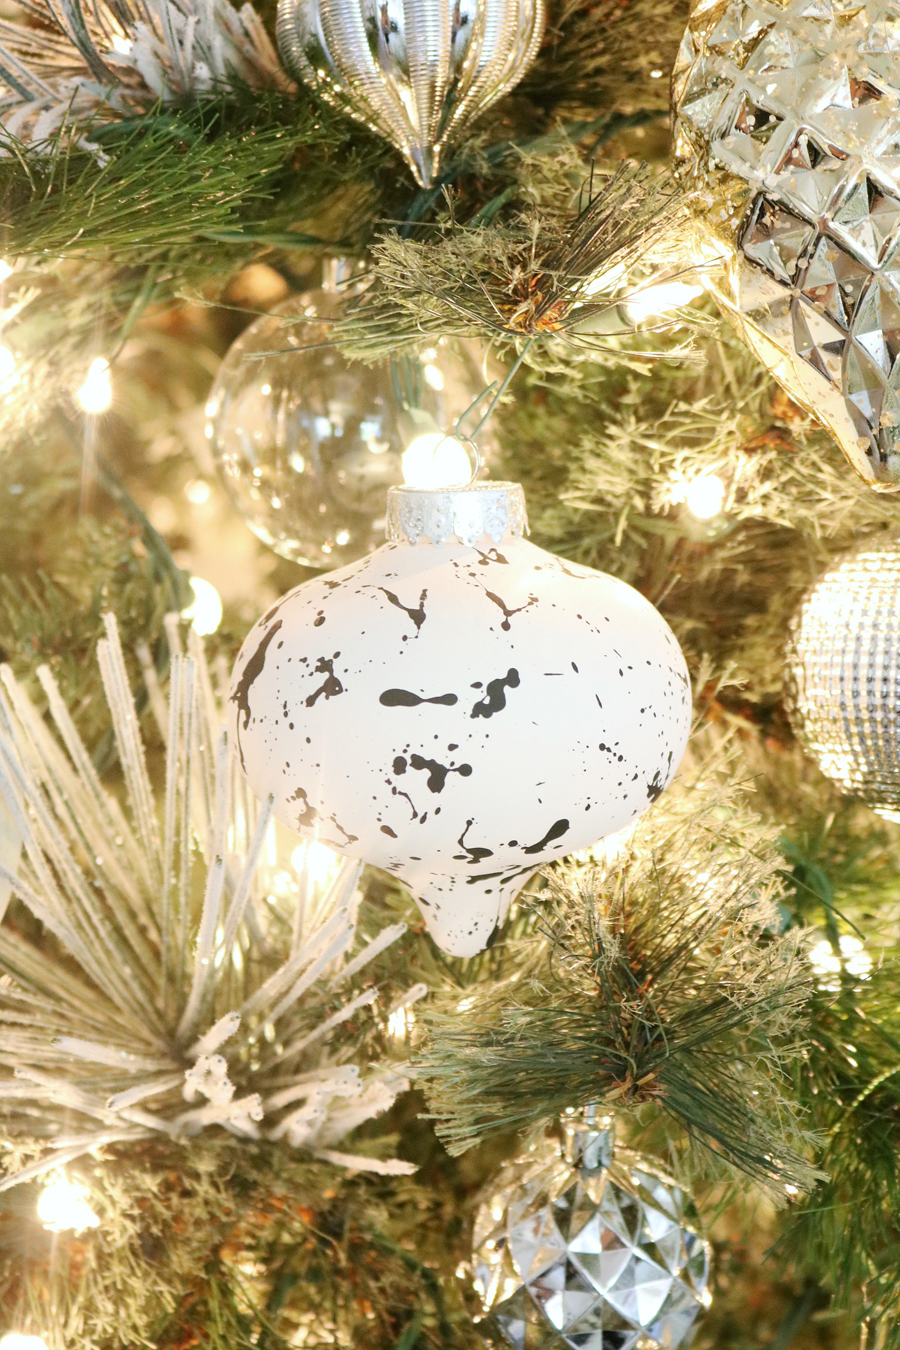 Black & White Modern Snowflake Christmas Tree Decor - Splatter paint ordinary plain ornaments.